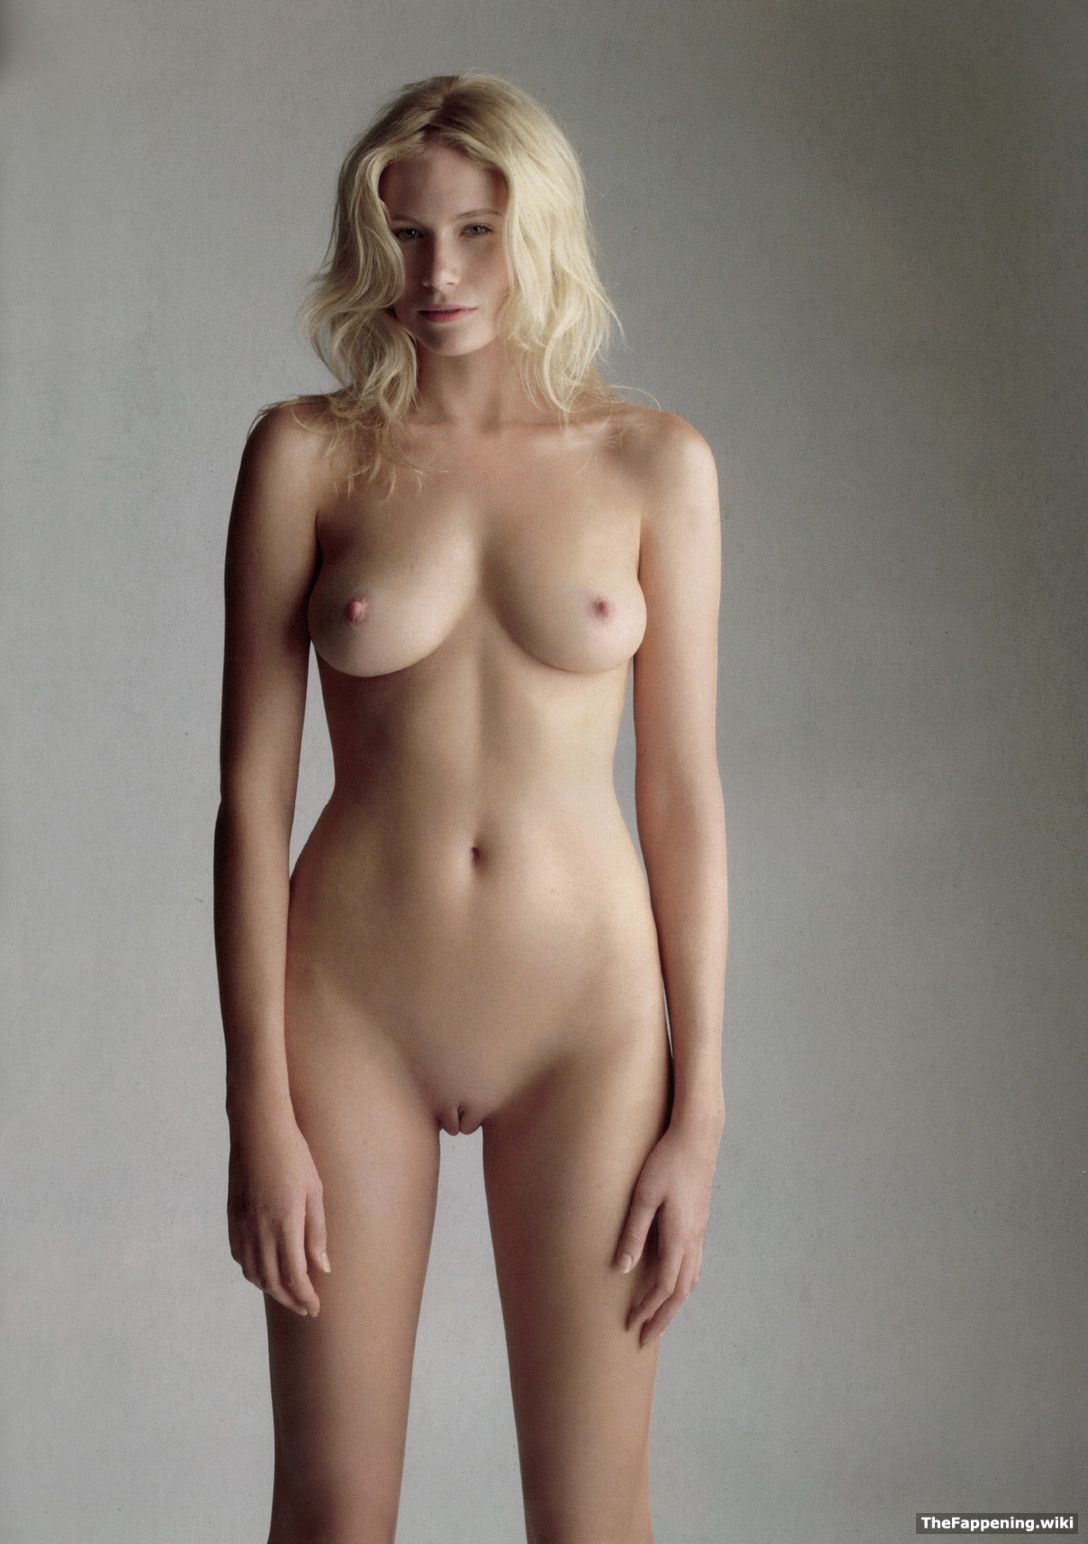 Amazing Celebrity Nudes tuuli shipster nude pics & vids - the fappening